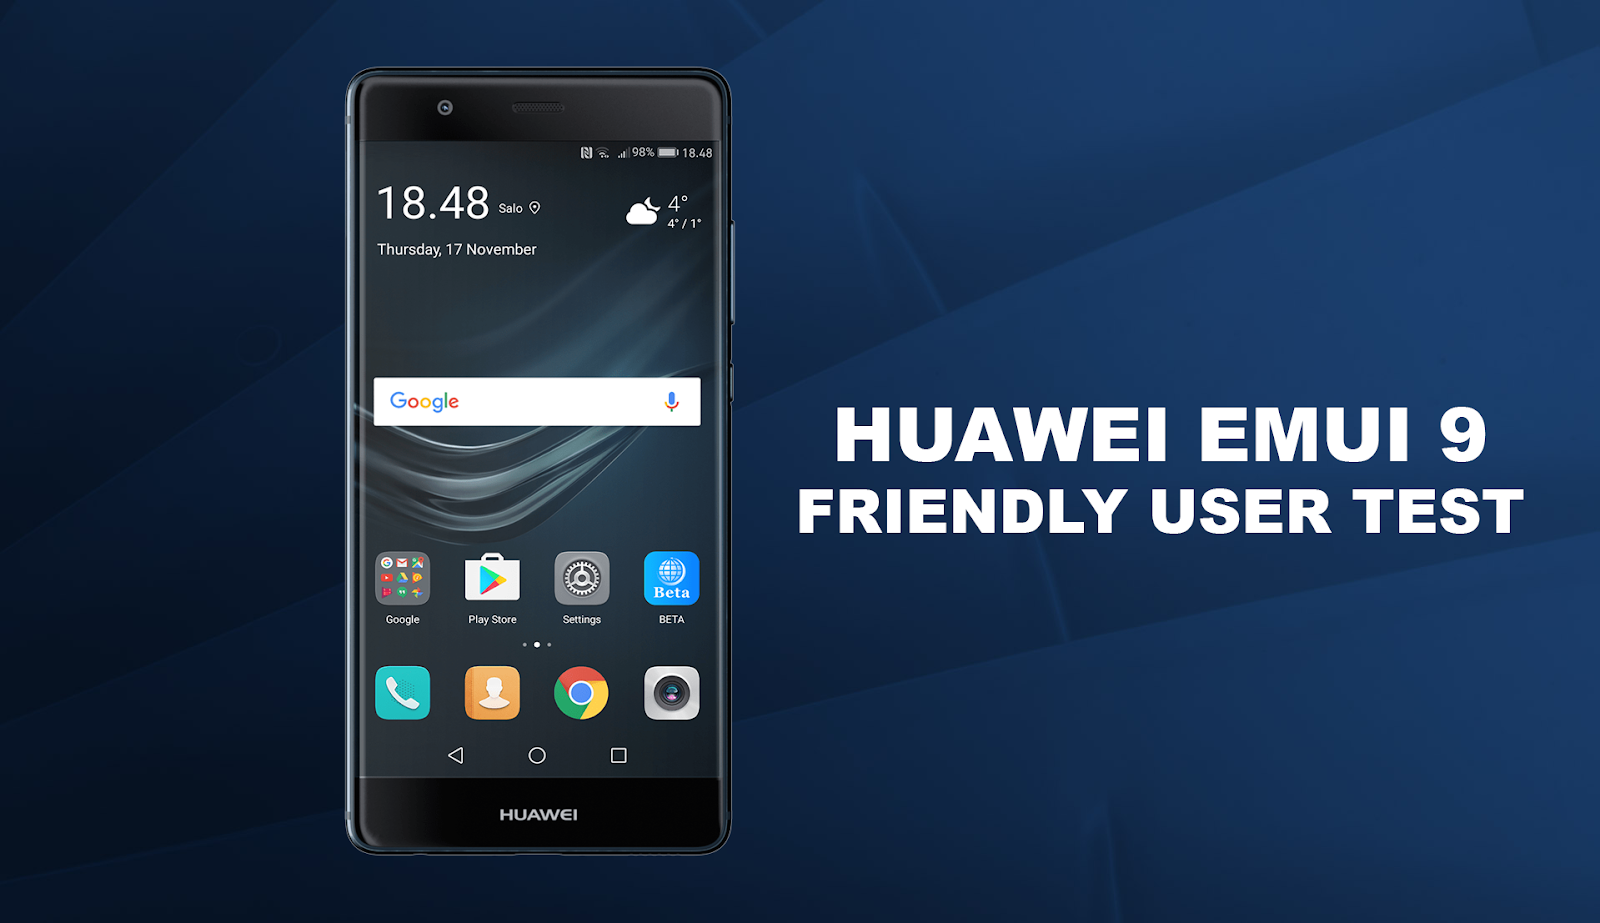 Huawei announces EMUI 9 based on Android Pie, available for